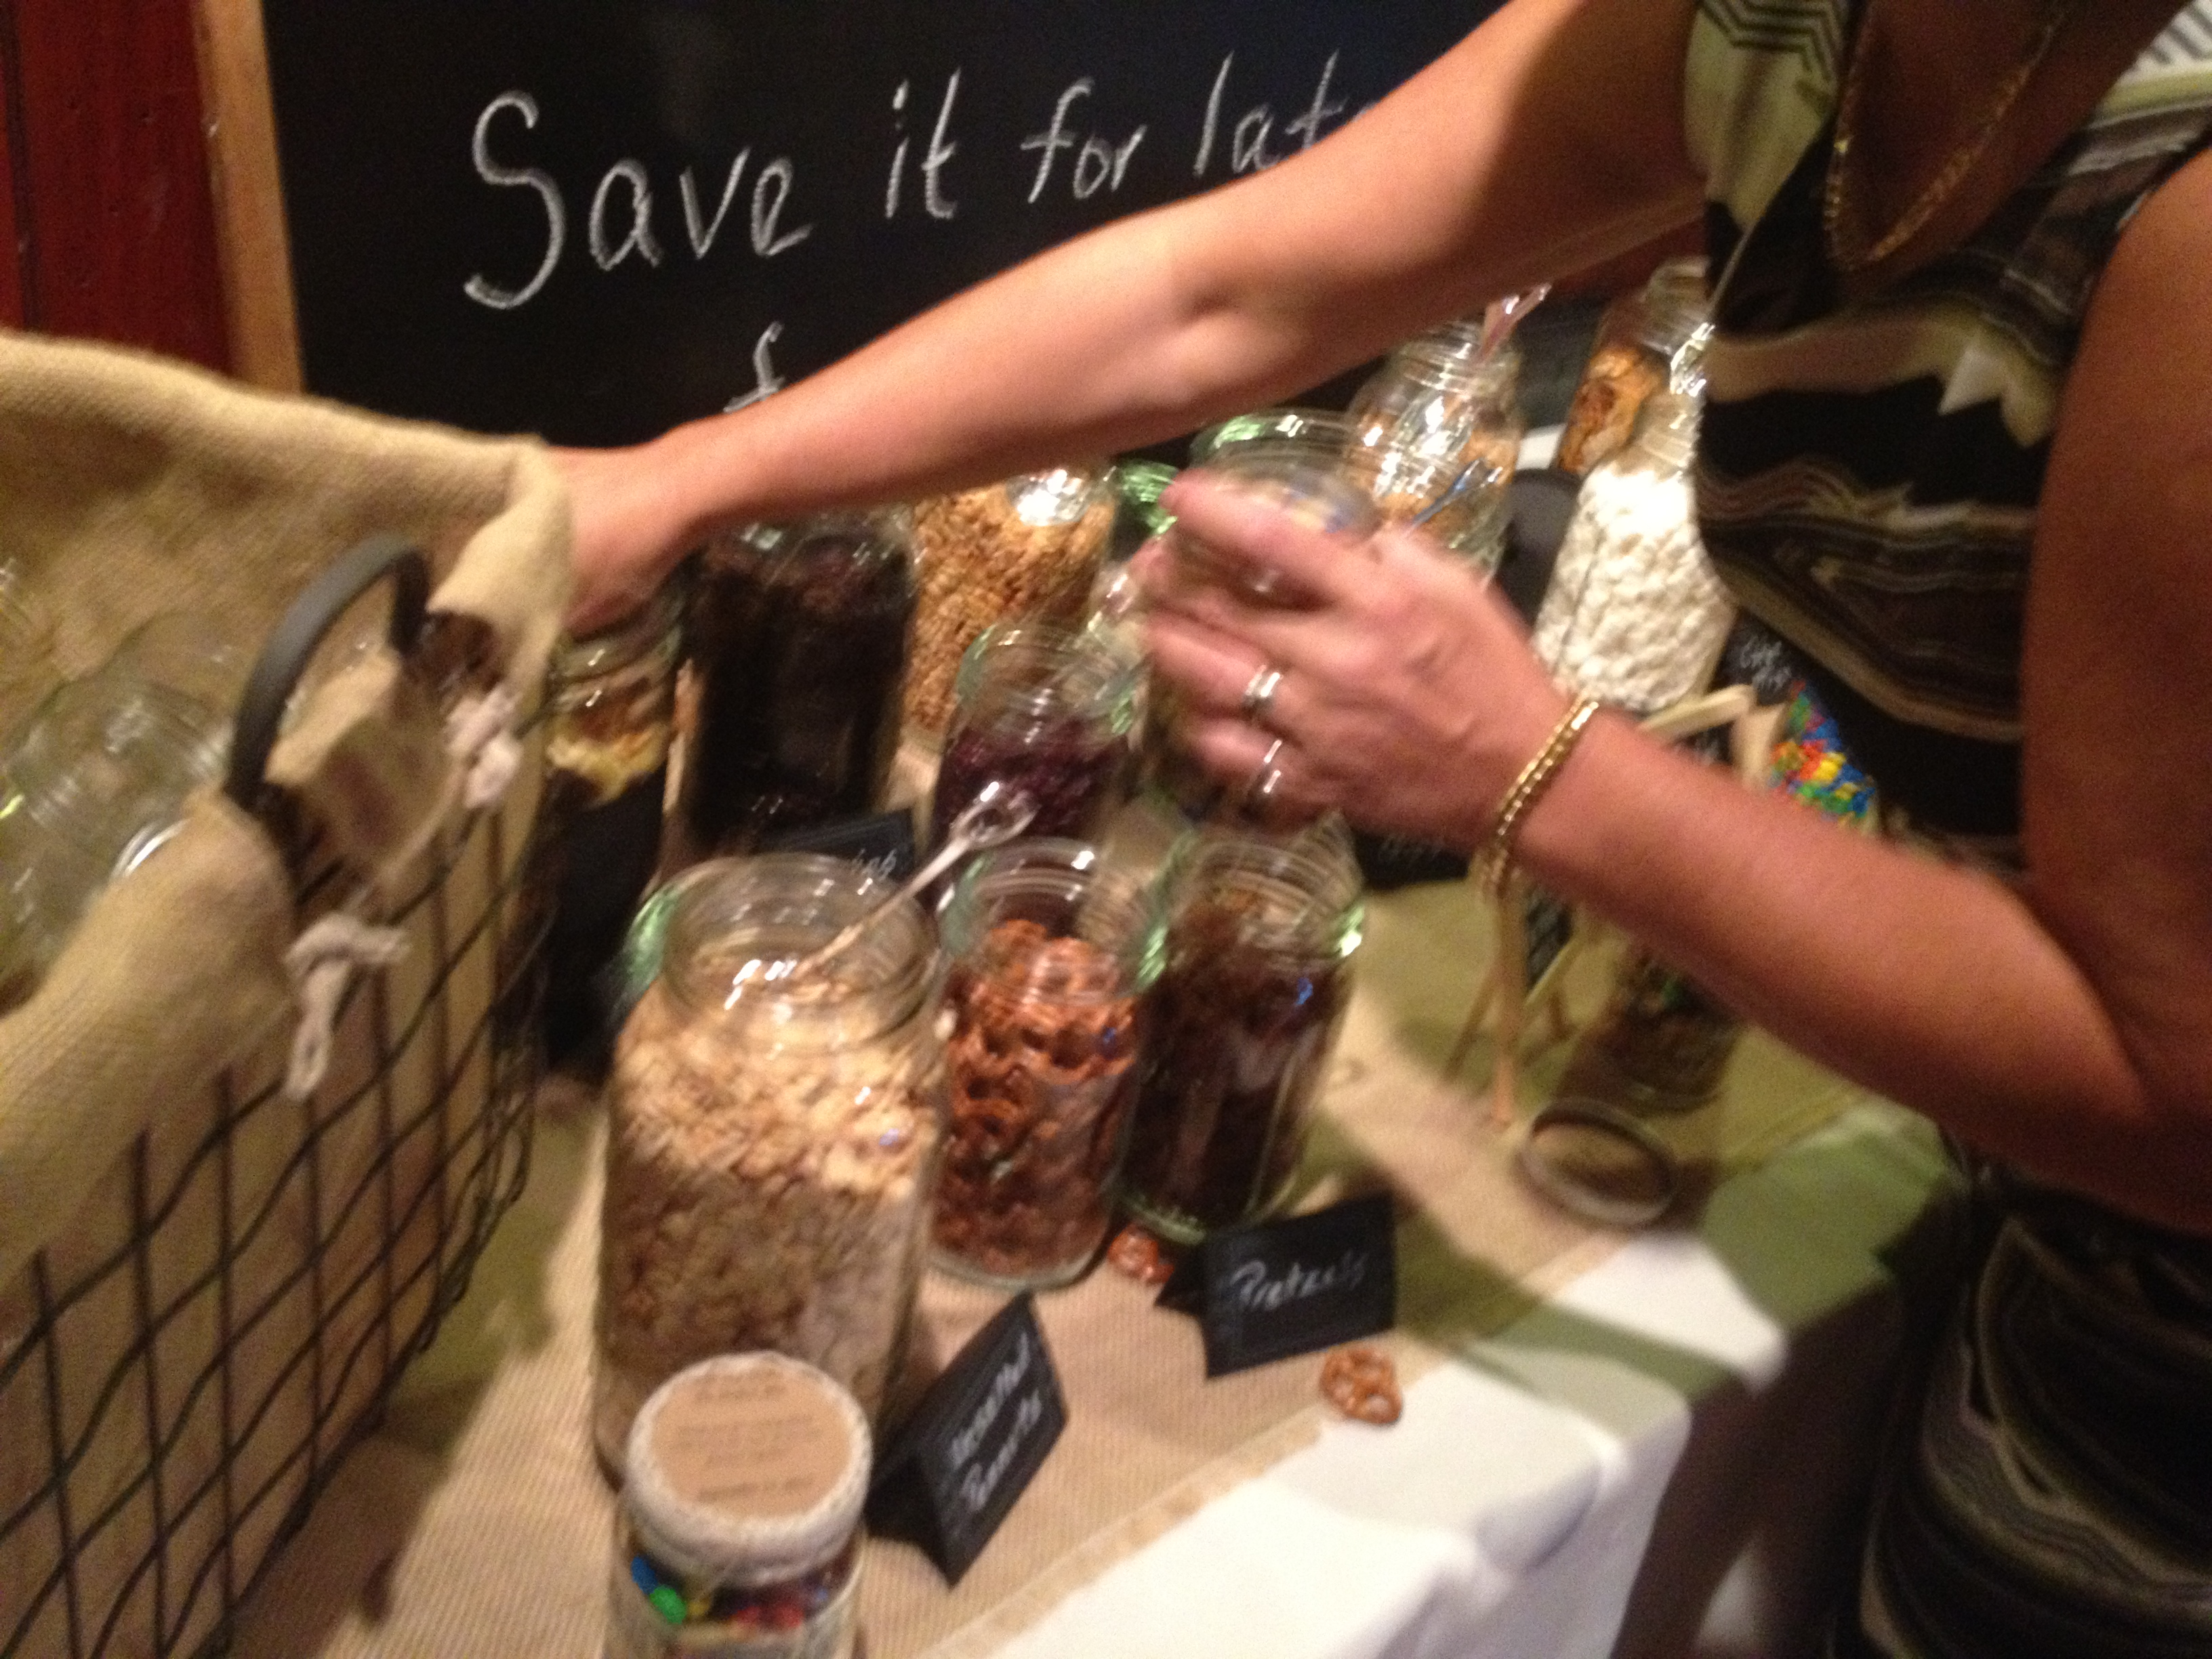 Wedding trail mix do it yourself bar albany wedding dj sweet 16 wedding trail mix do it yourself bar solutioingenieria Images